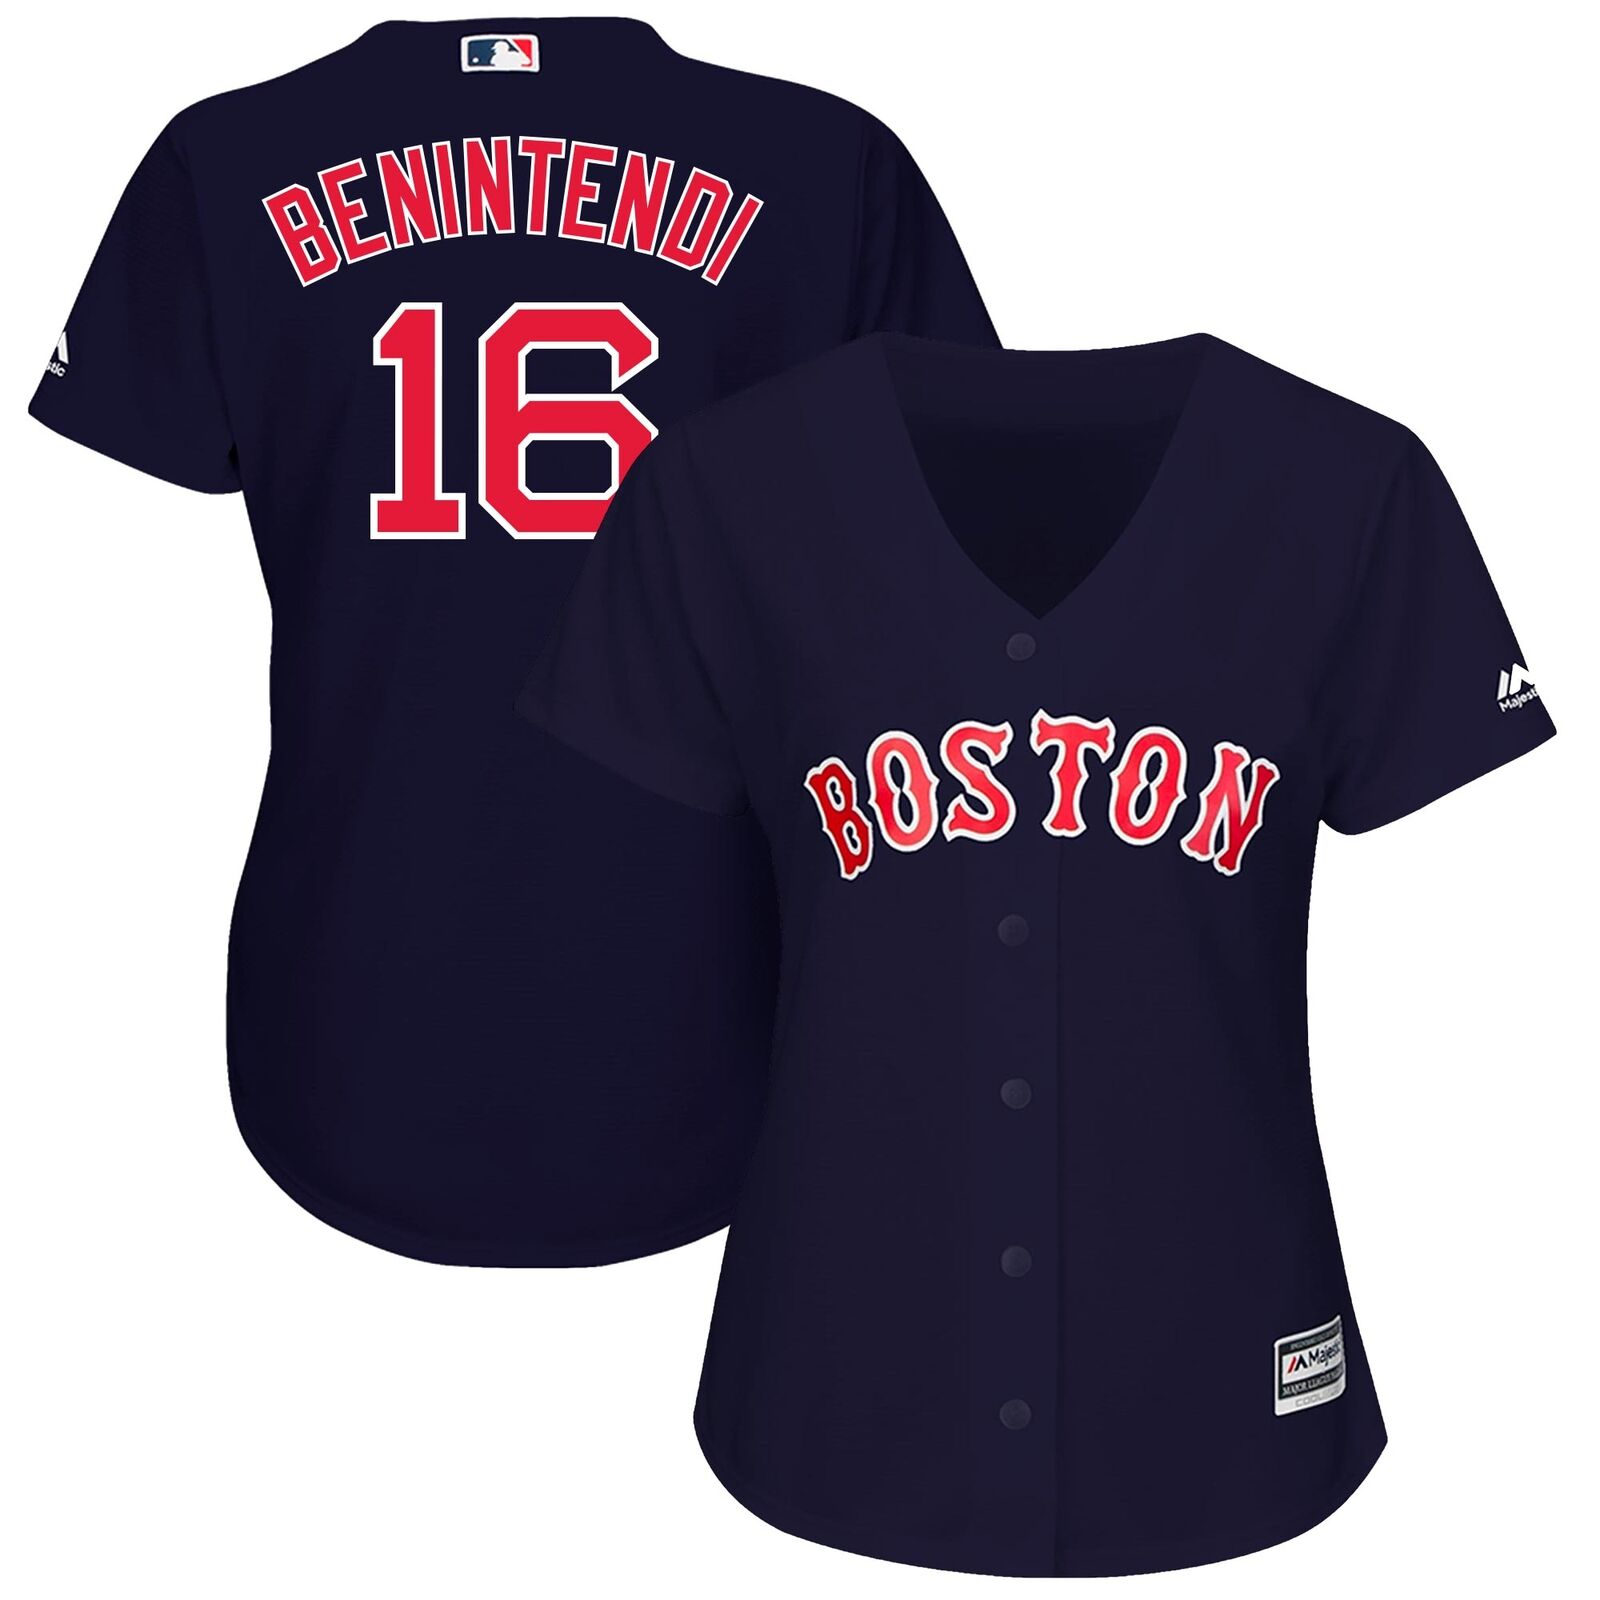 MLB Boston rot Sox Majestic Replik Cool Base Wechsel Trikot Baseball Shirt Damen